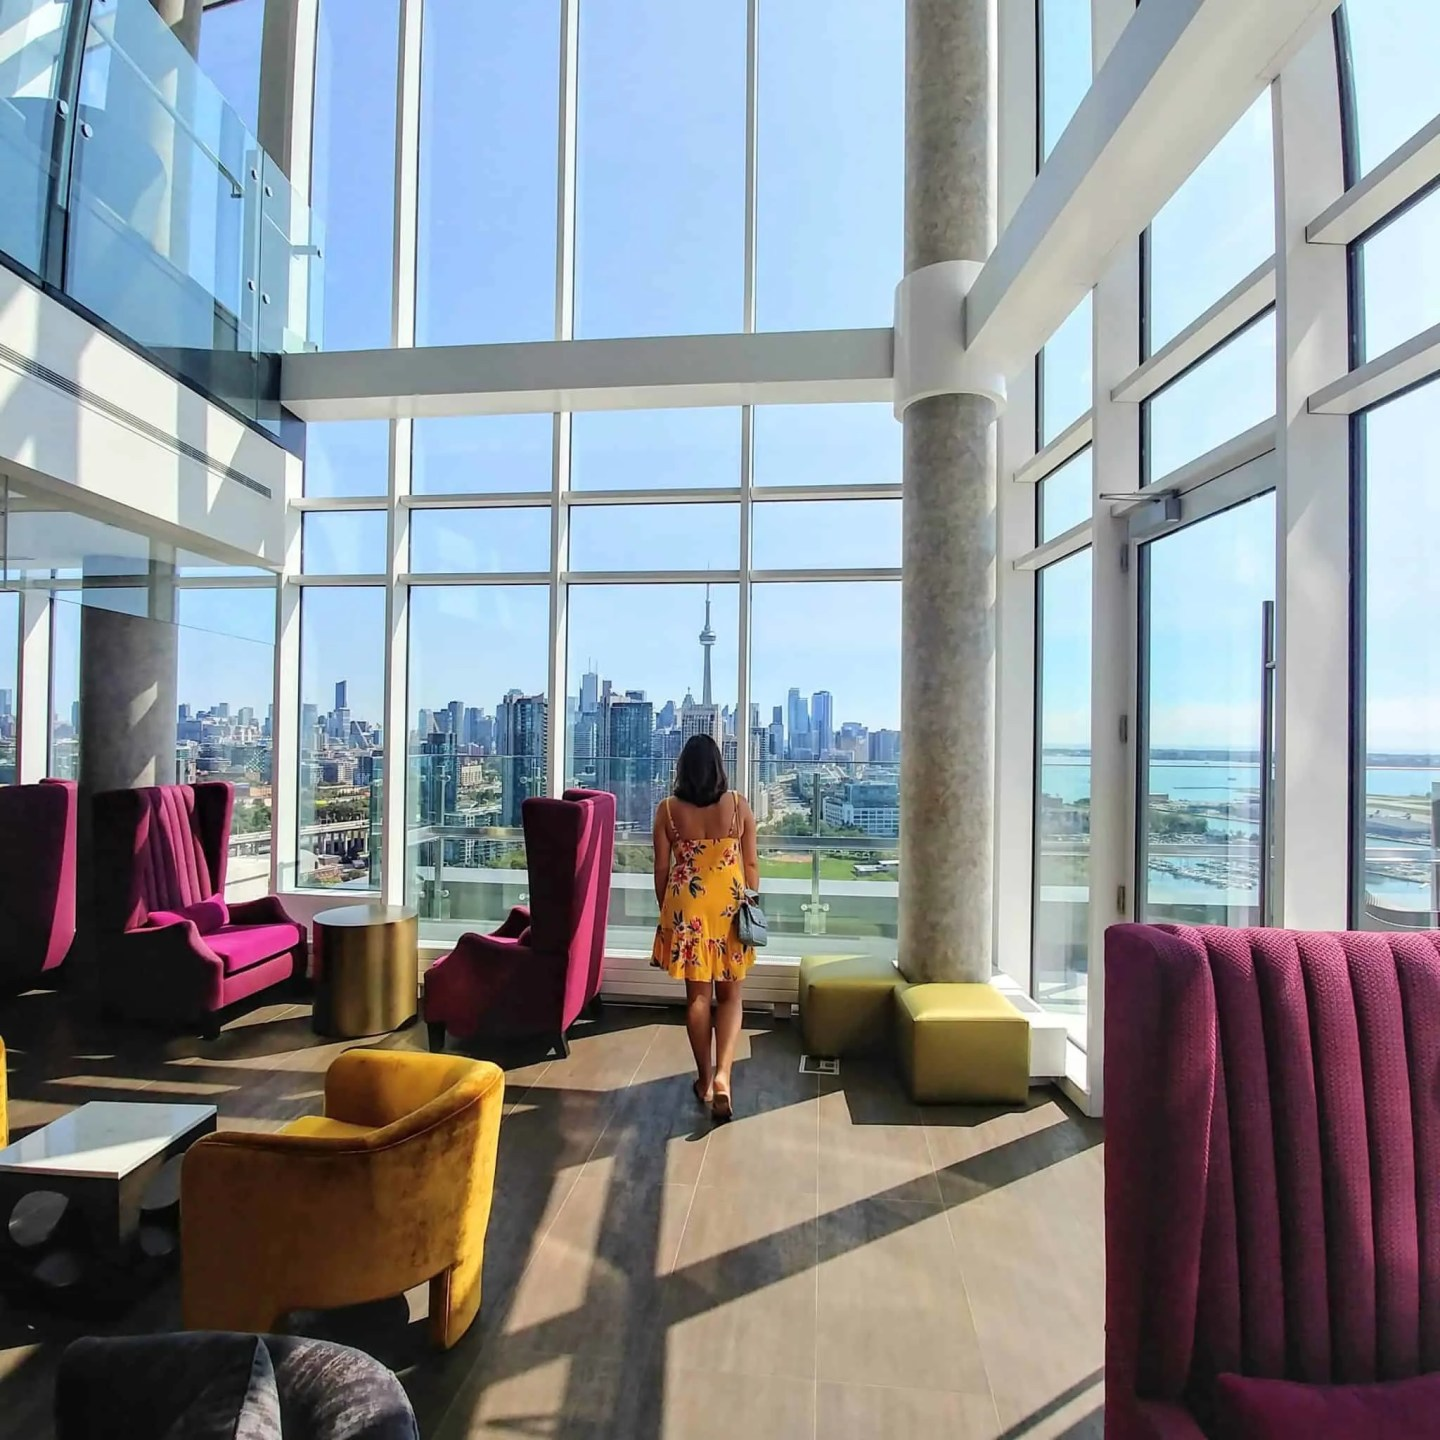 Hotel X Toronto Best Views Luxury Hotel | Diana\'s Healthy Living